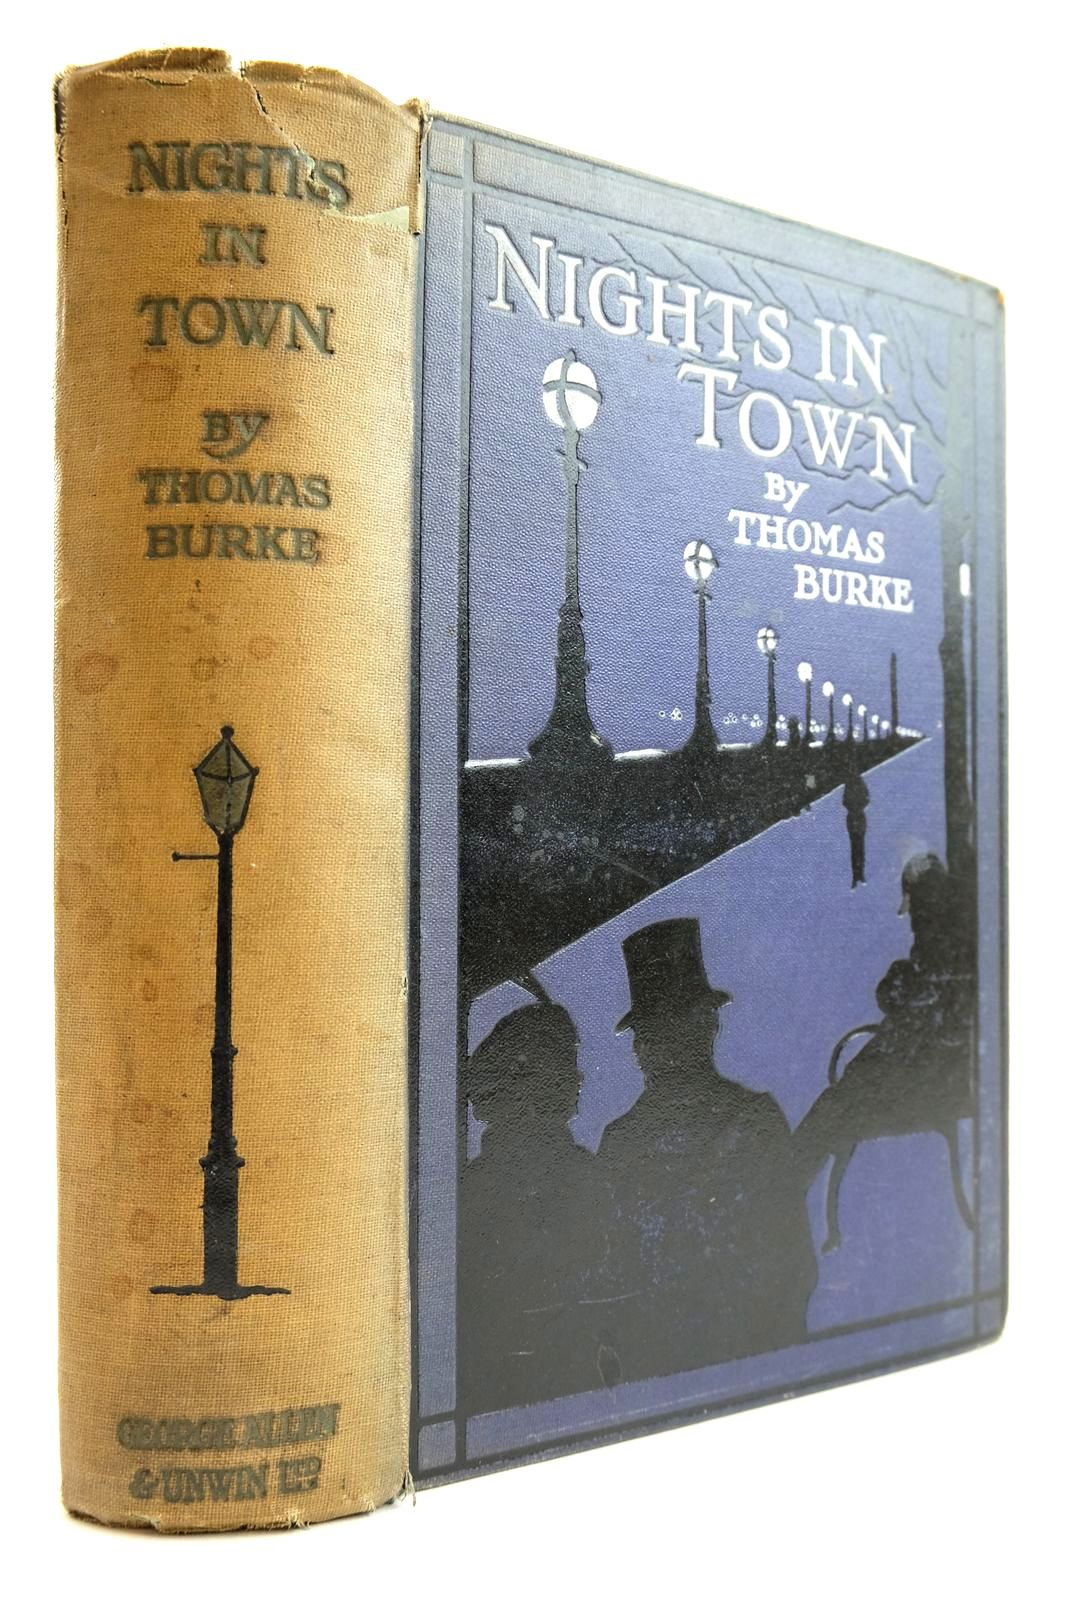 Photo of NIGHTS IN TOWN: A LONDON AUTOBIOGRAPHY written by Burke, Thomas published by George Allen & Unwin Ltd. (STOCK CODE: 2134065)  for sale by Stella & Rose's Books